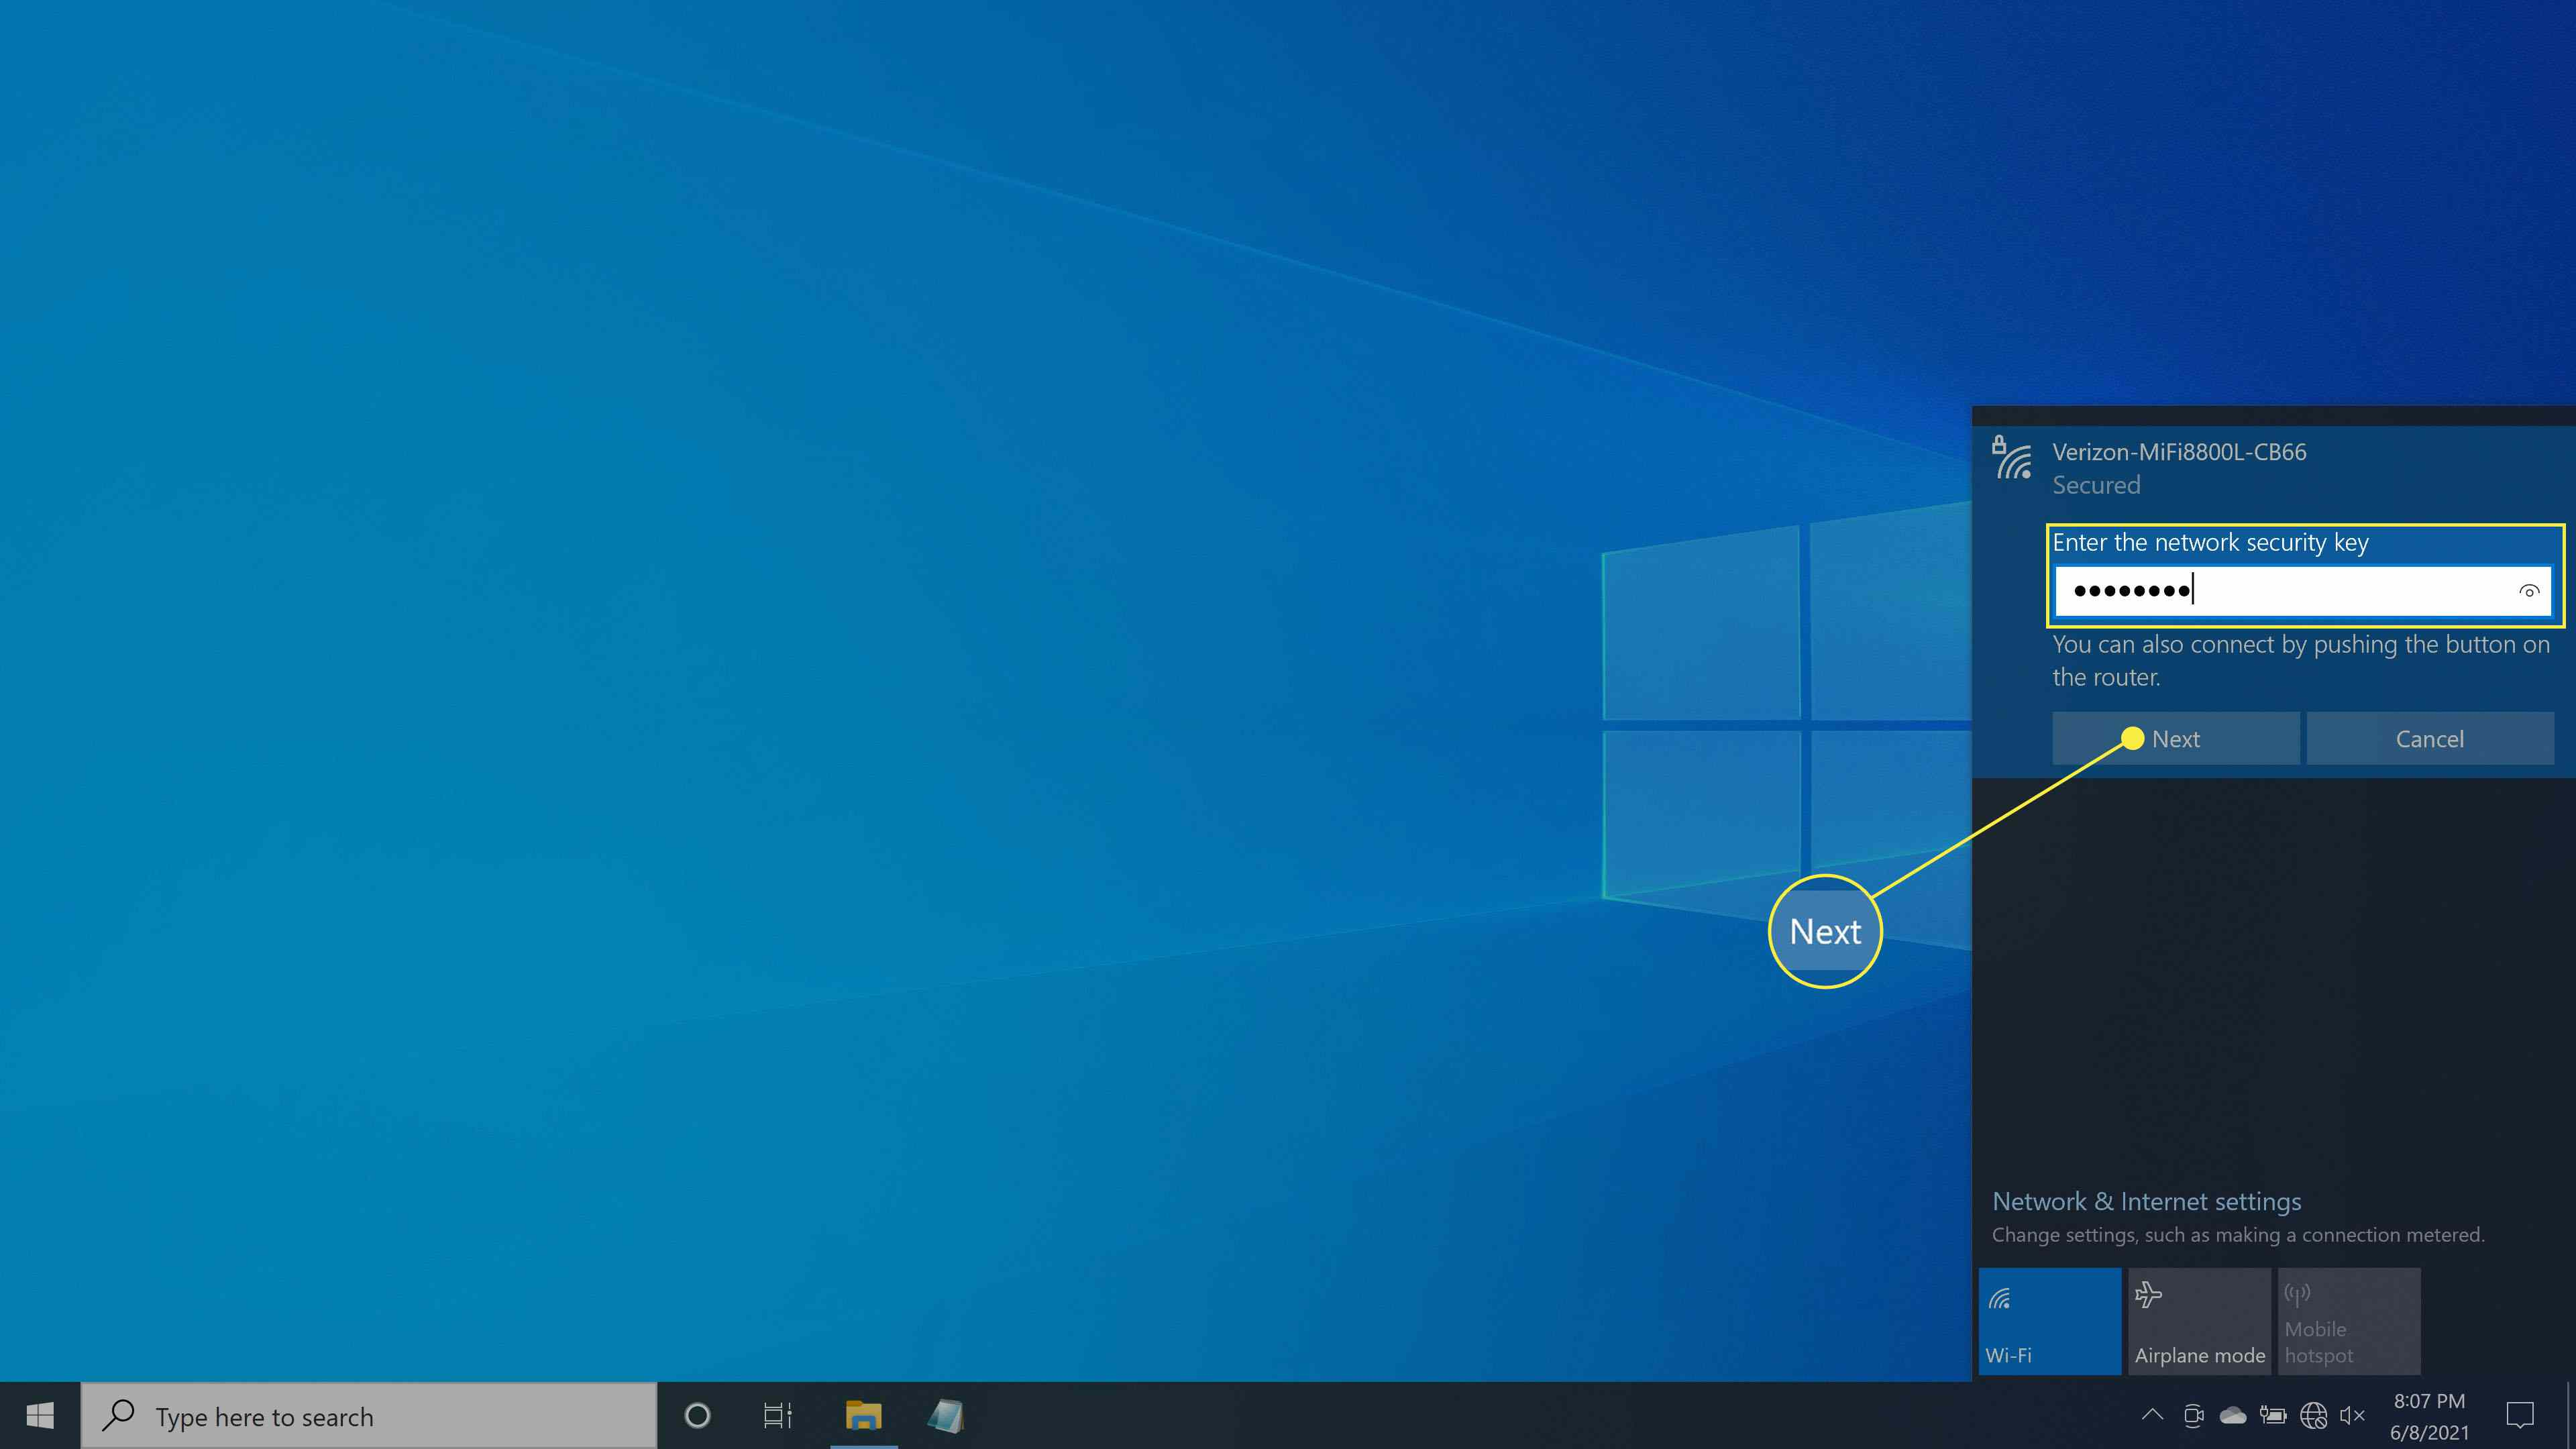 Entering in a network key and selecting Next to continue wireless connection setup in Windows 10.